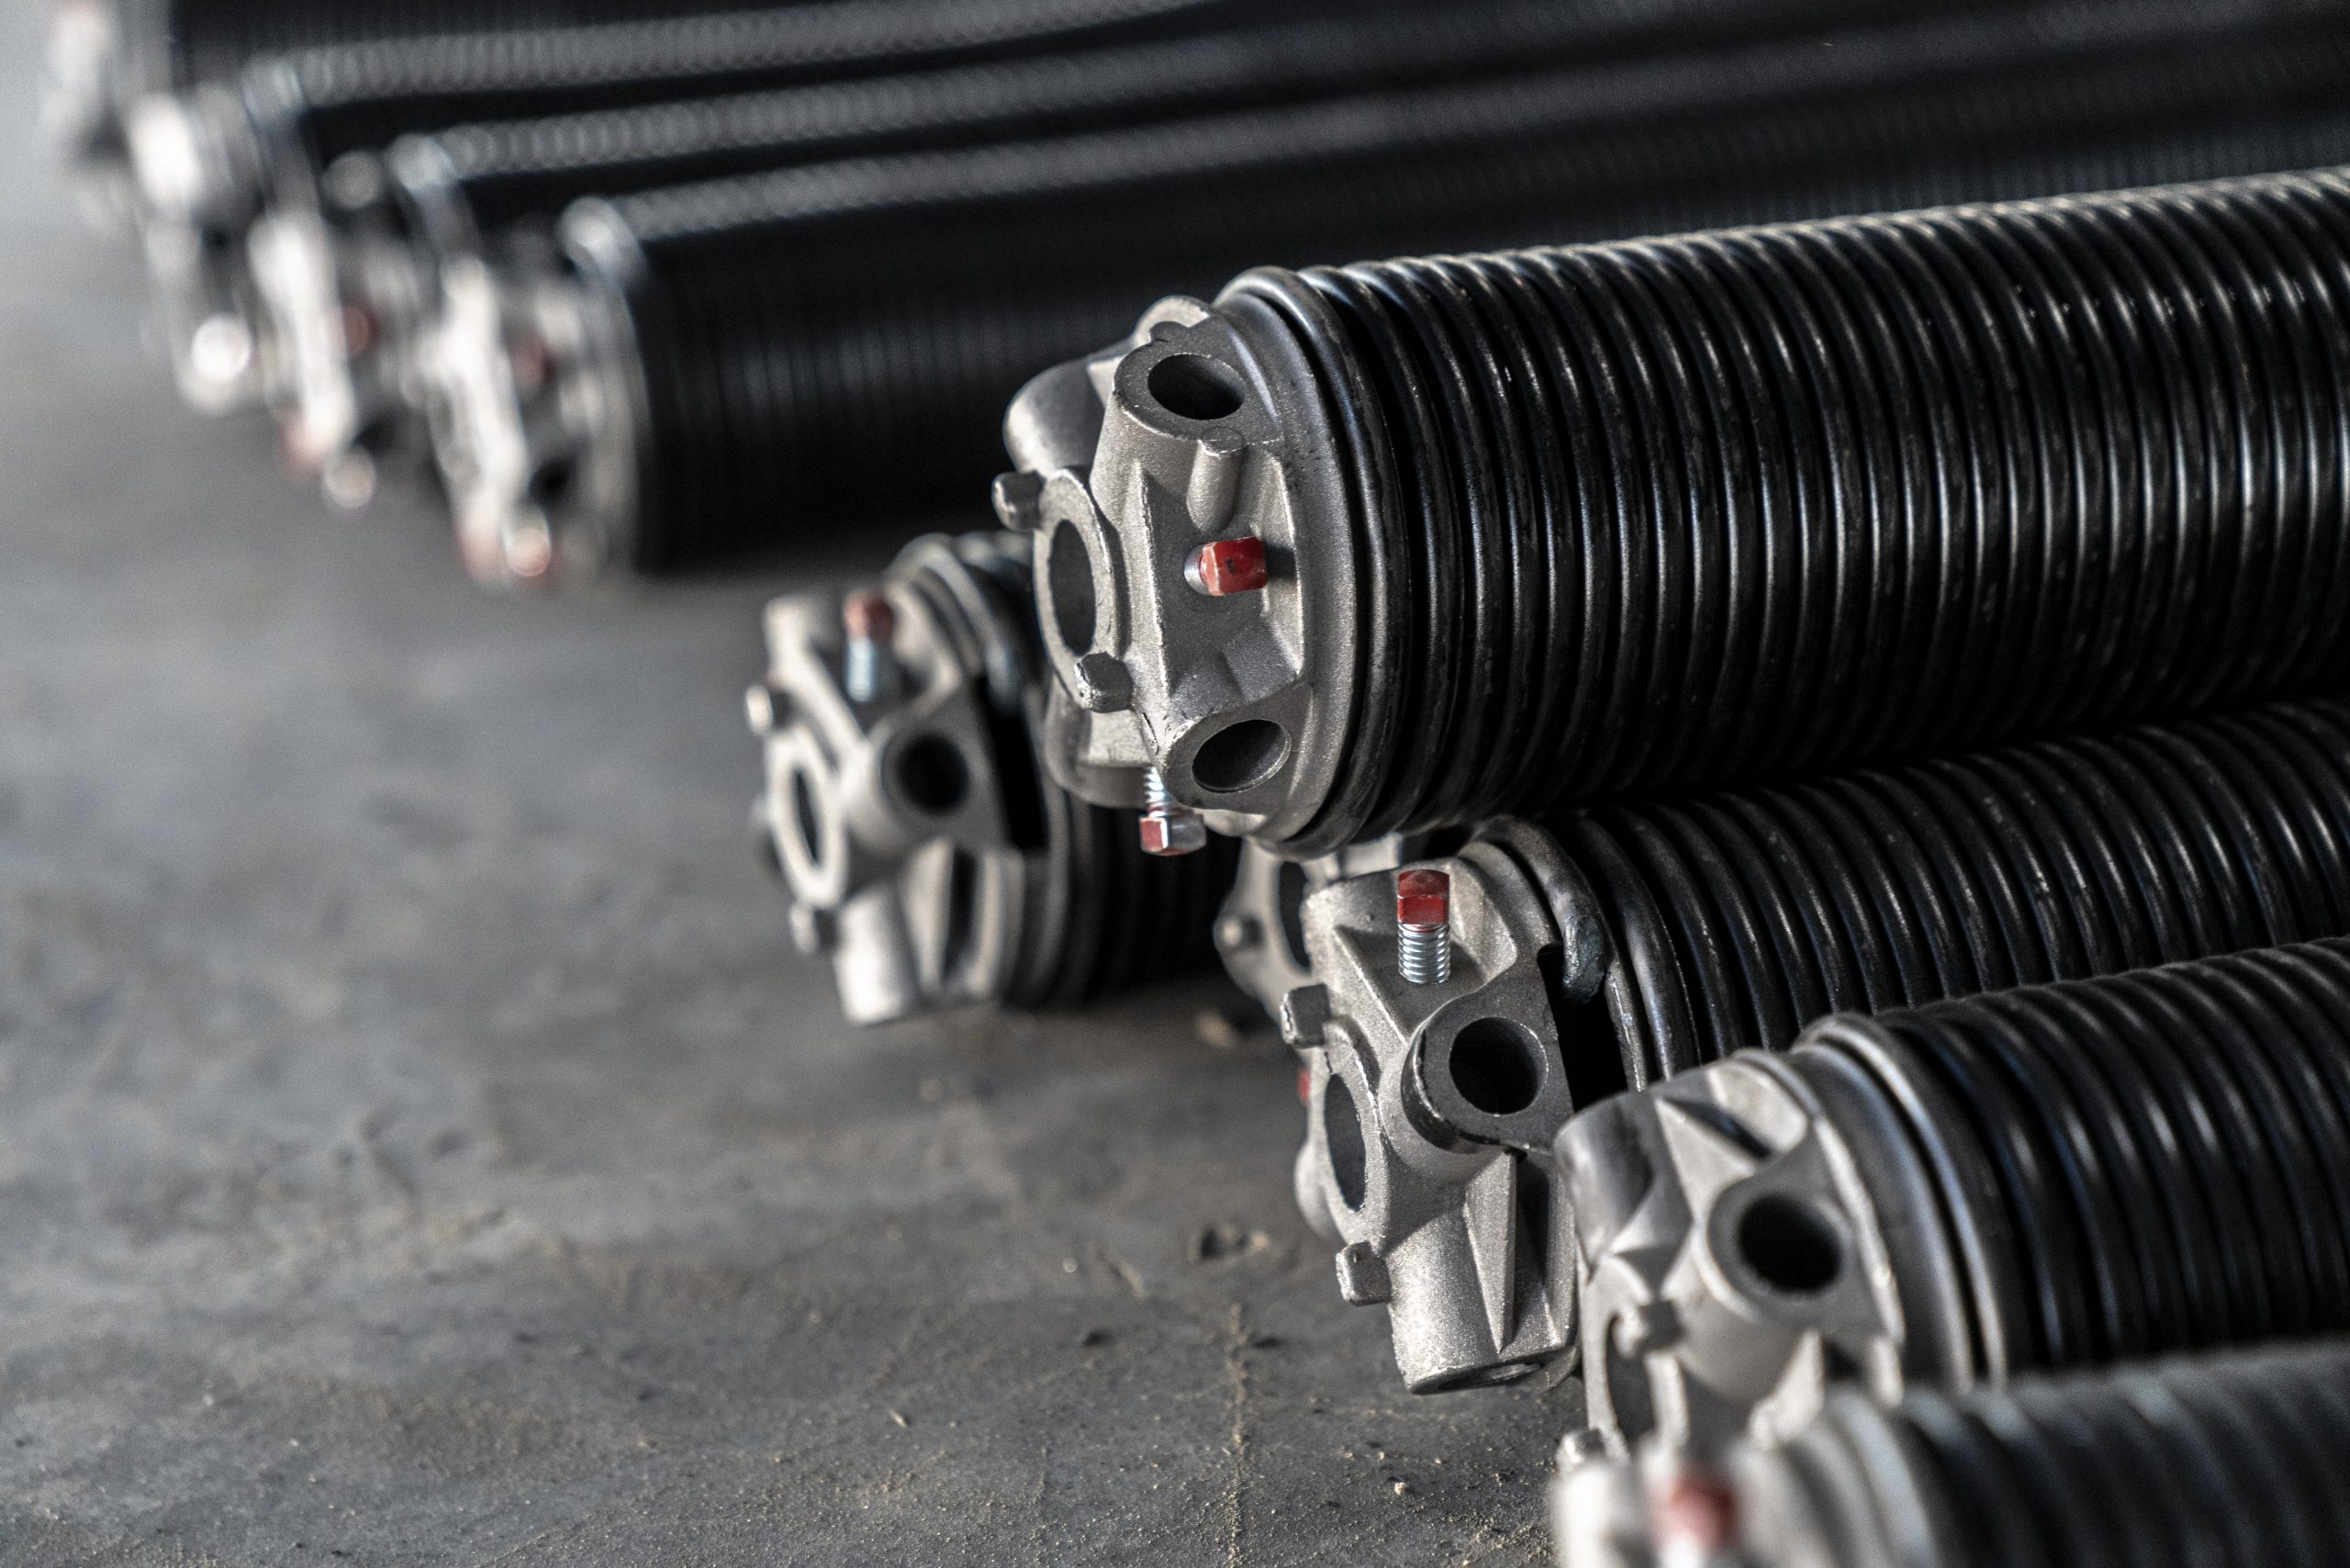 When should you replace your garage door springs